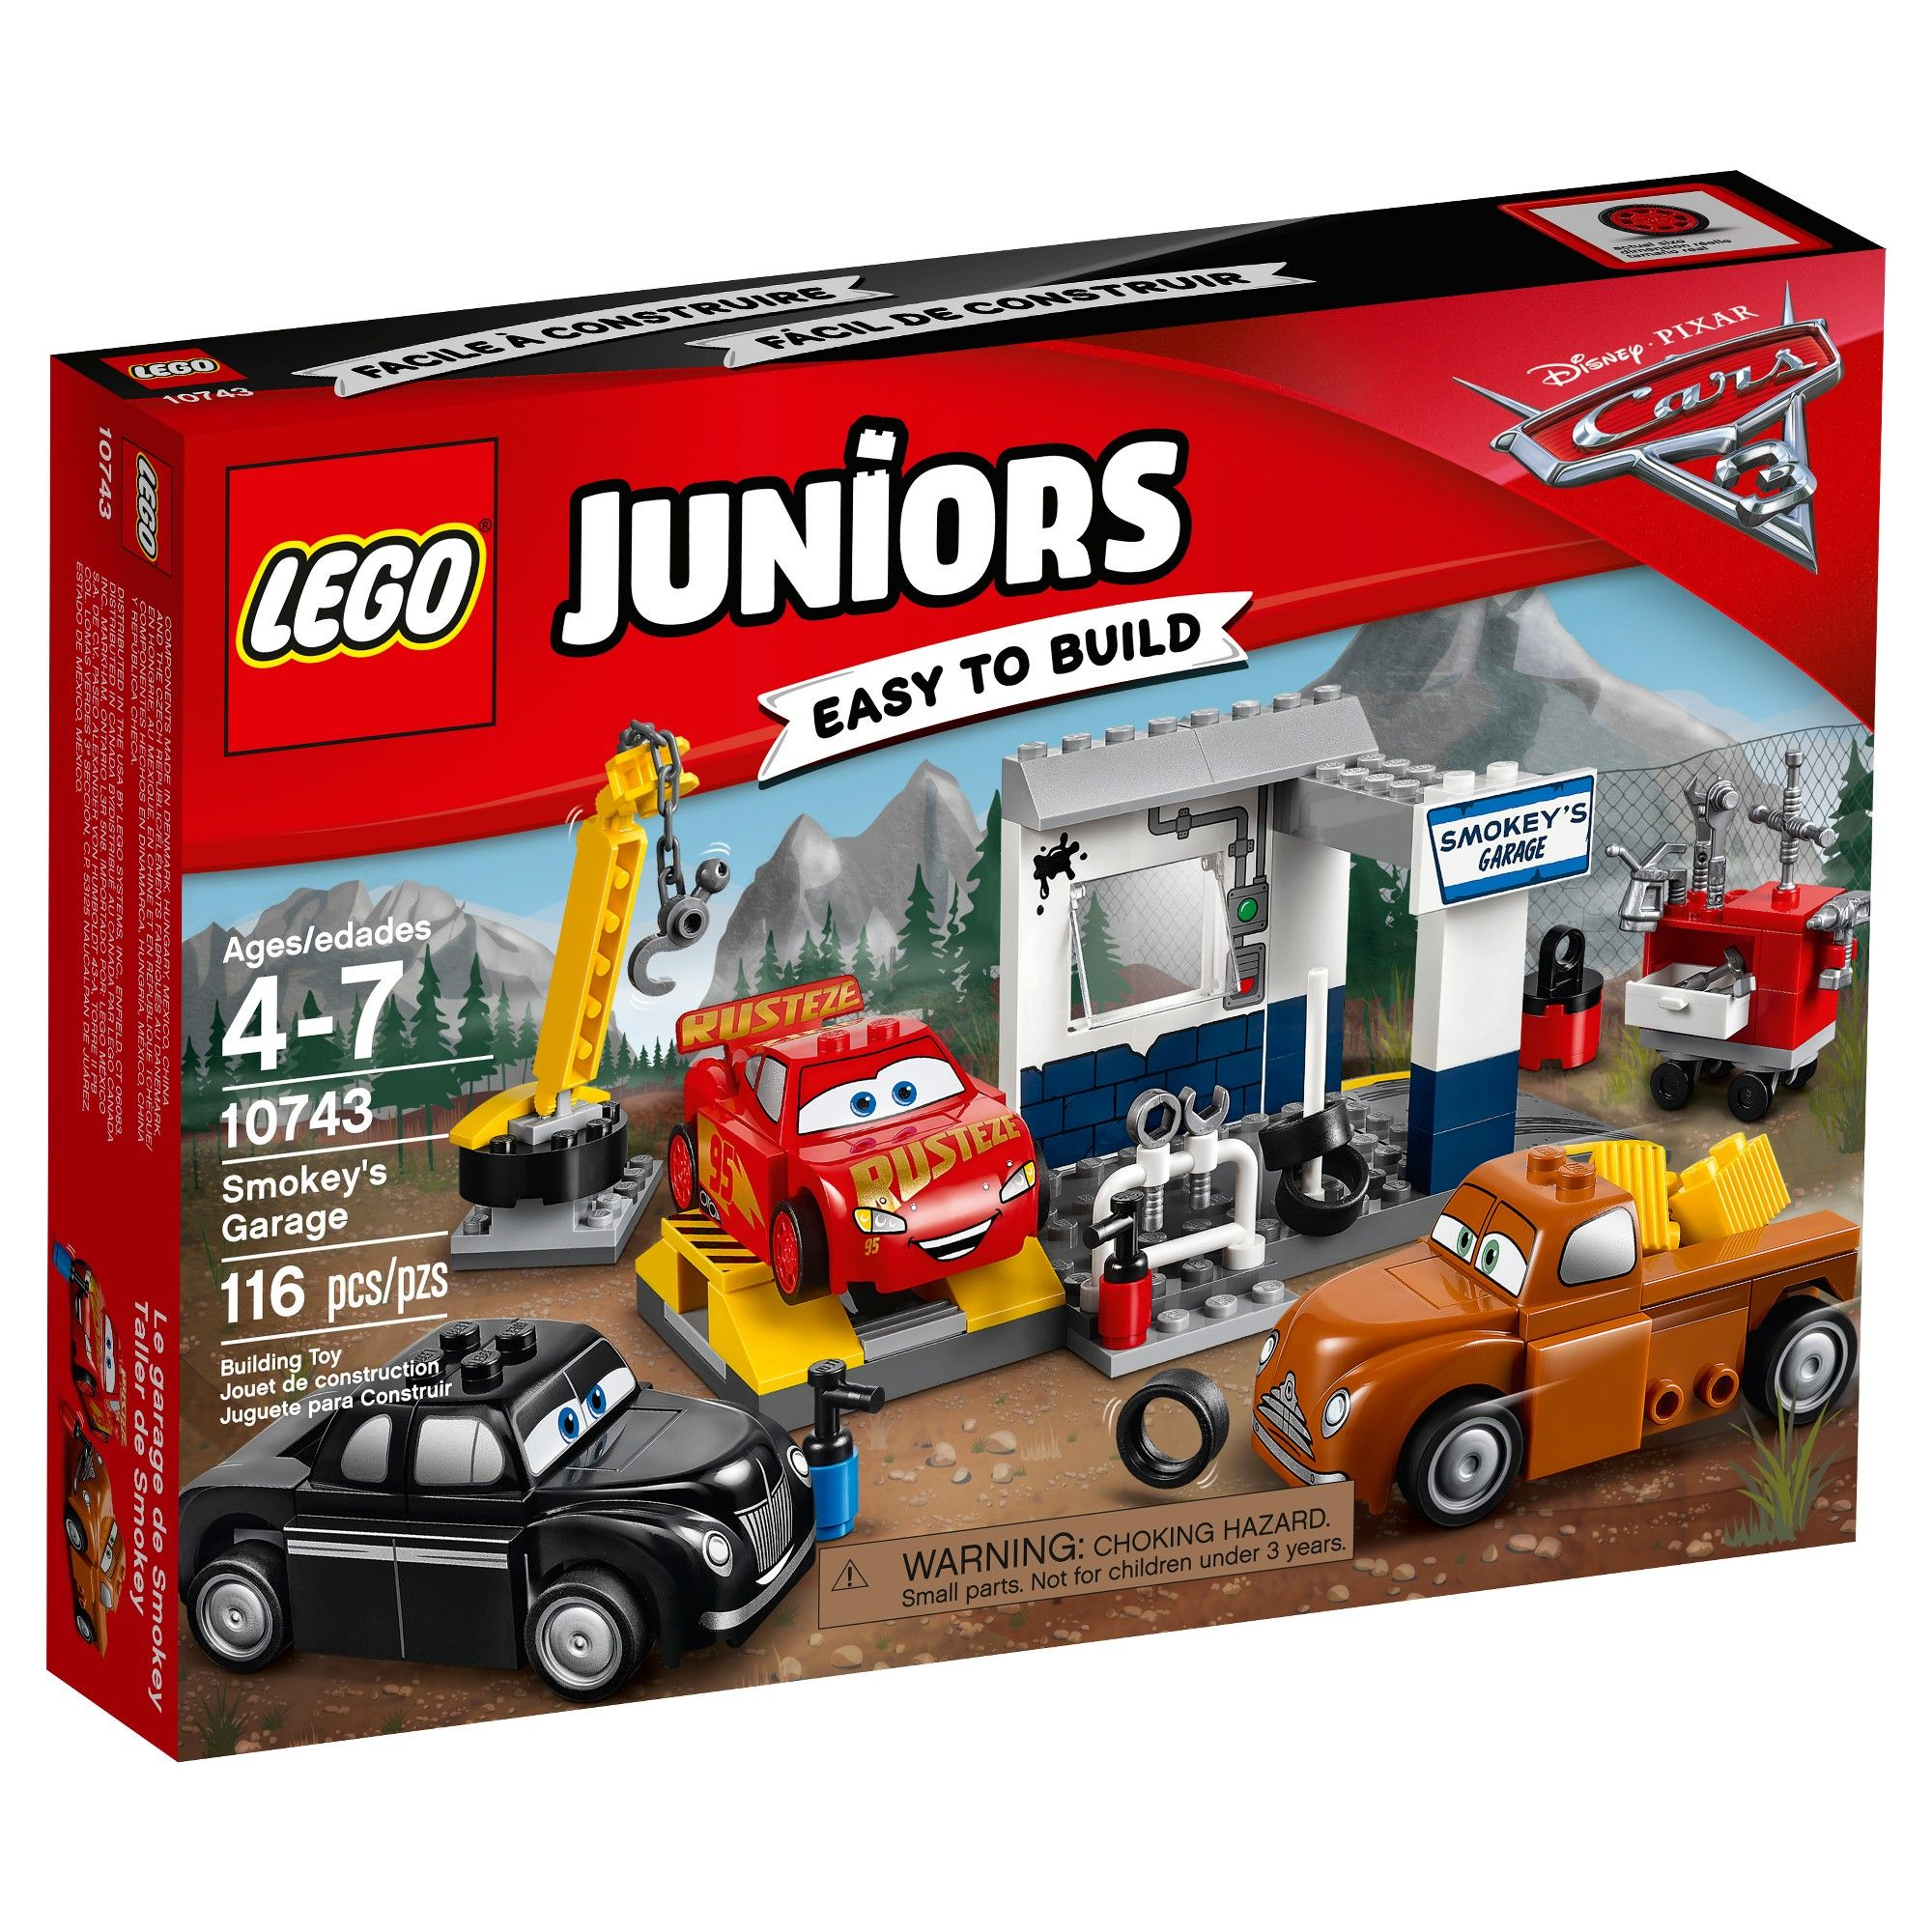 Cars 3 Jackson Storm Jouet Lego Juniors Disneypixar Cars 3 Smokey S Garage 10743